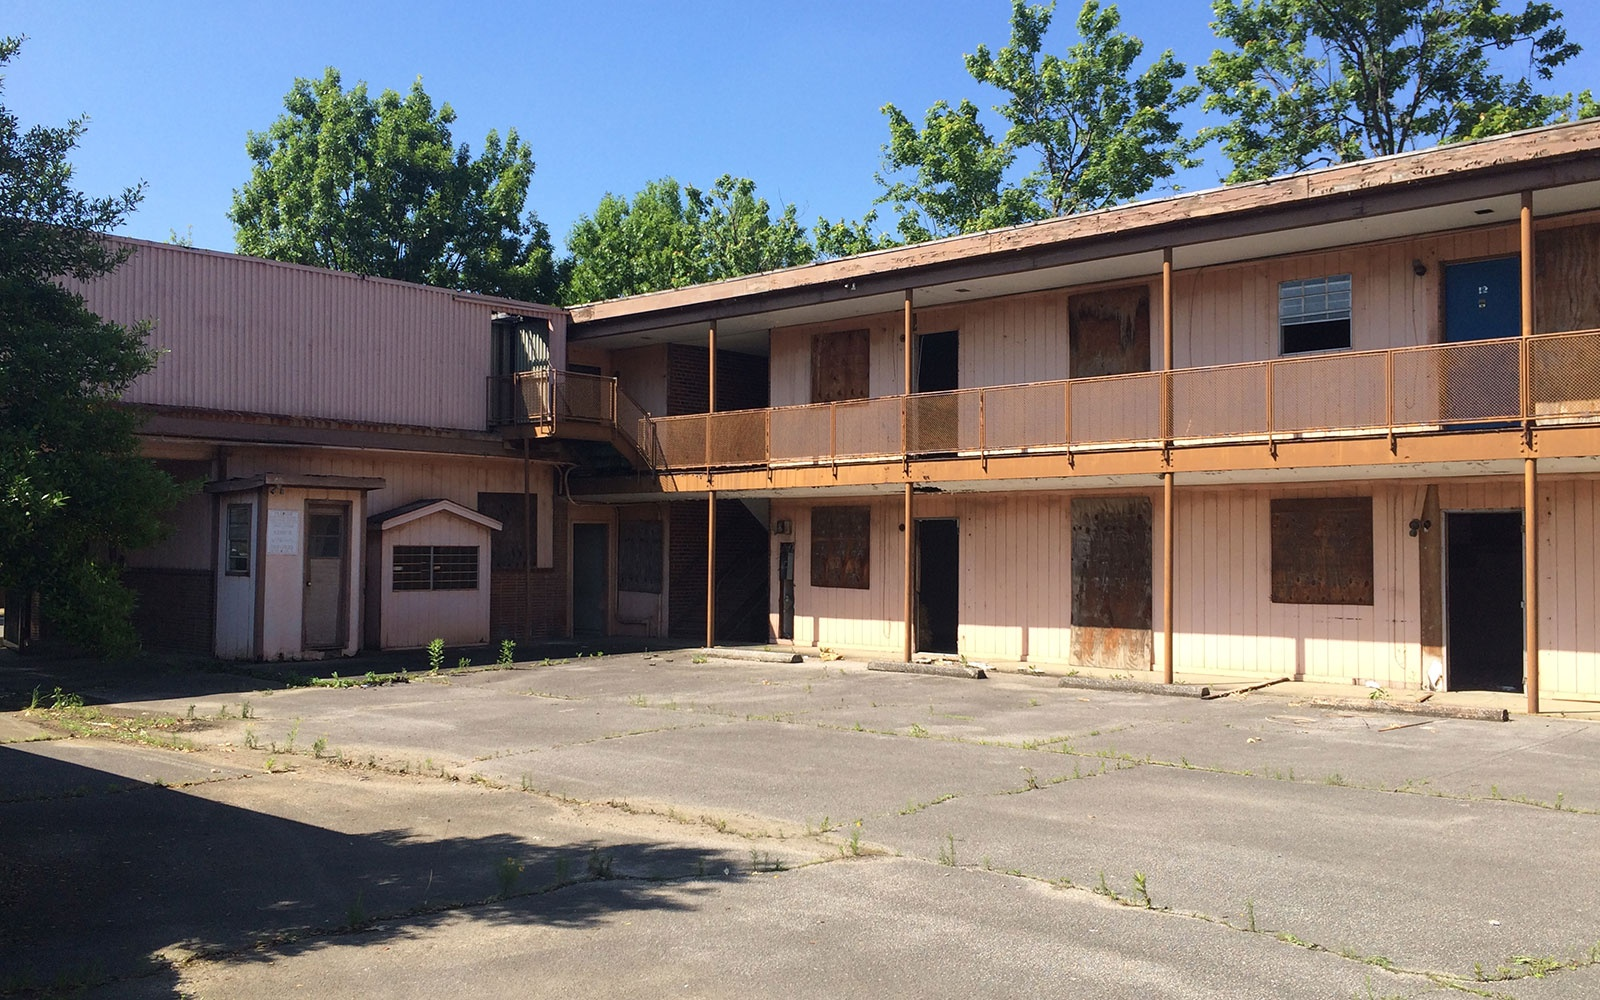 A.G. Gaston Motel in Birmingham, Alabama